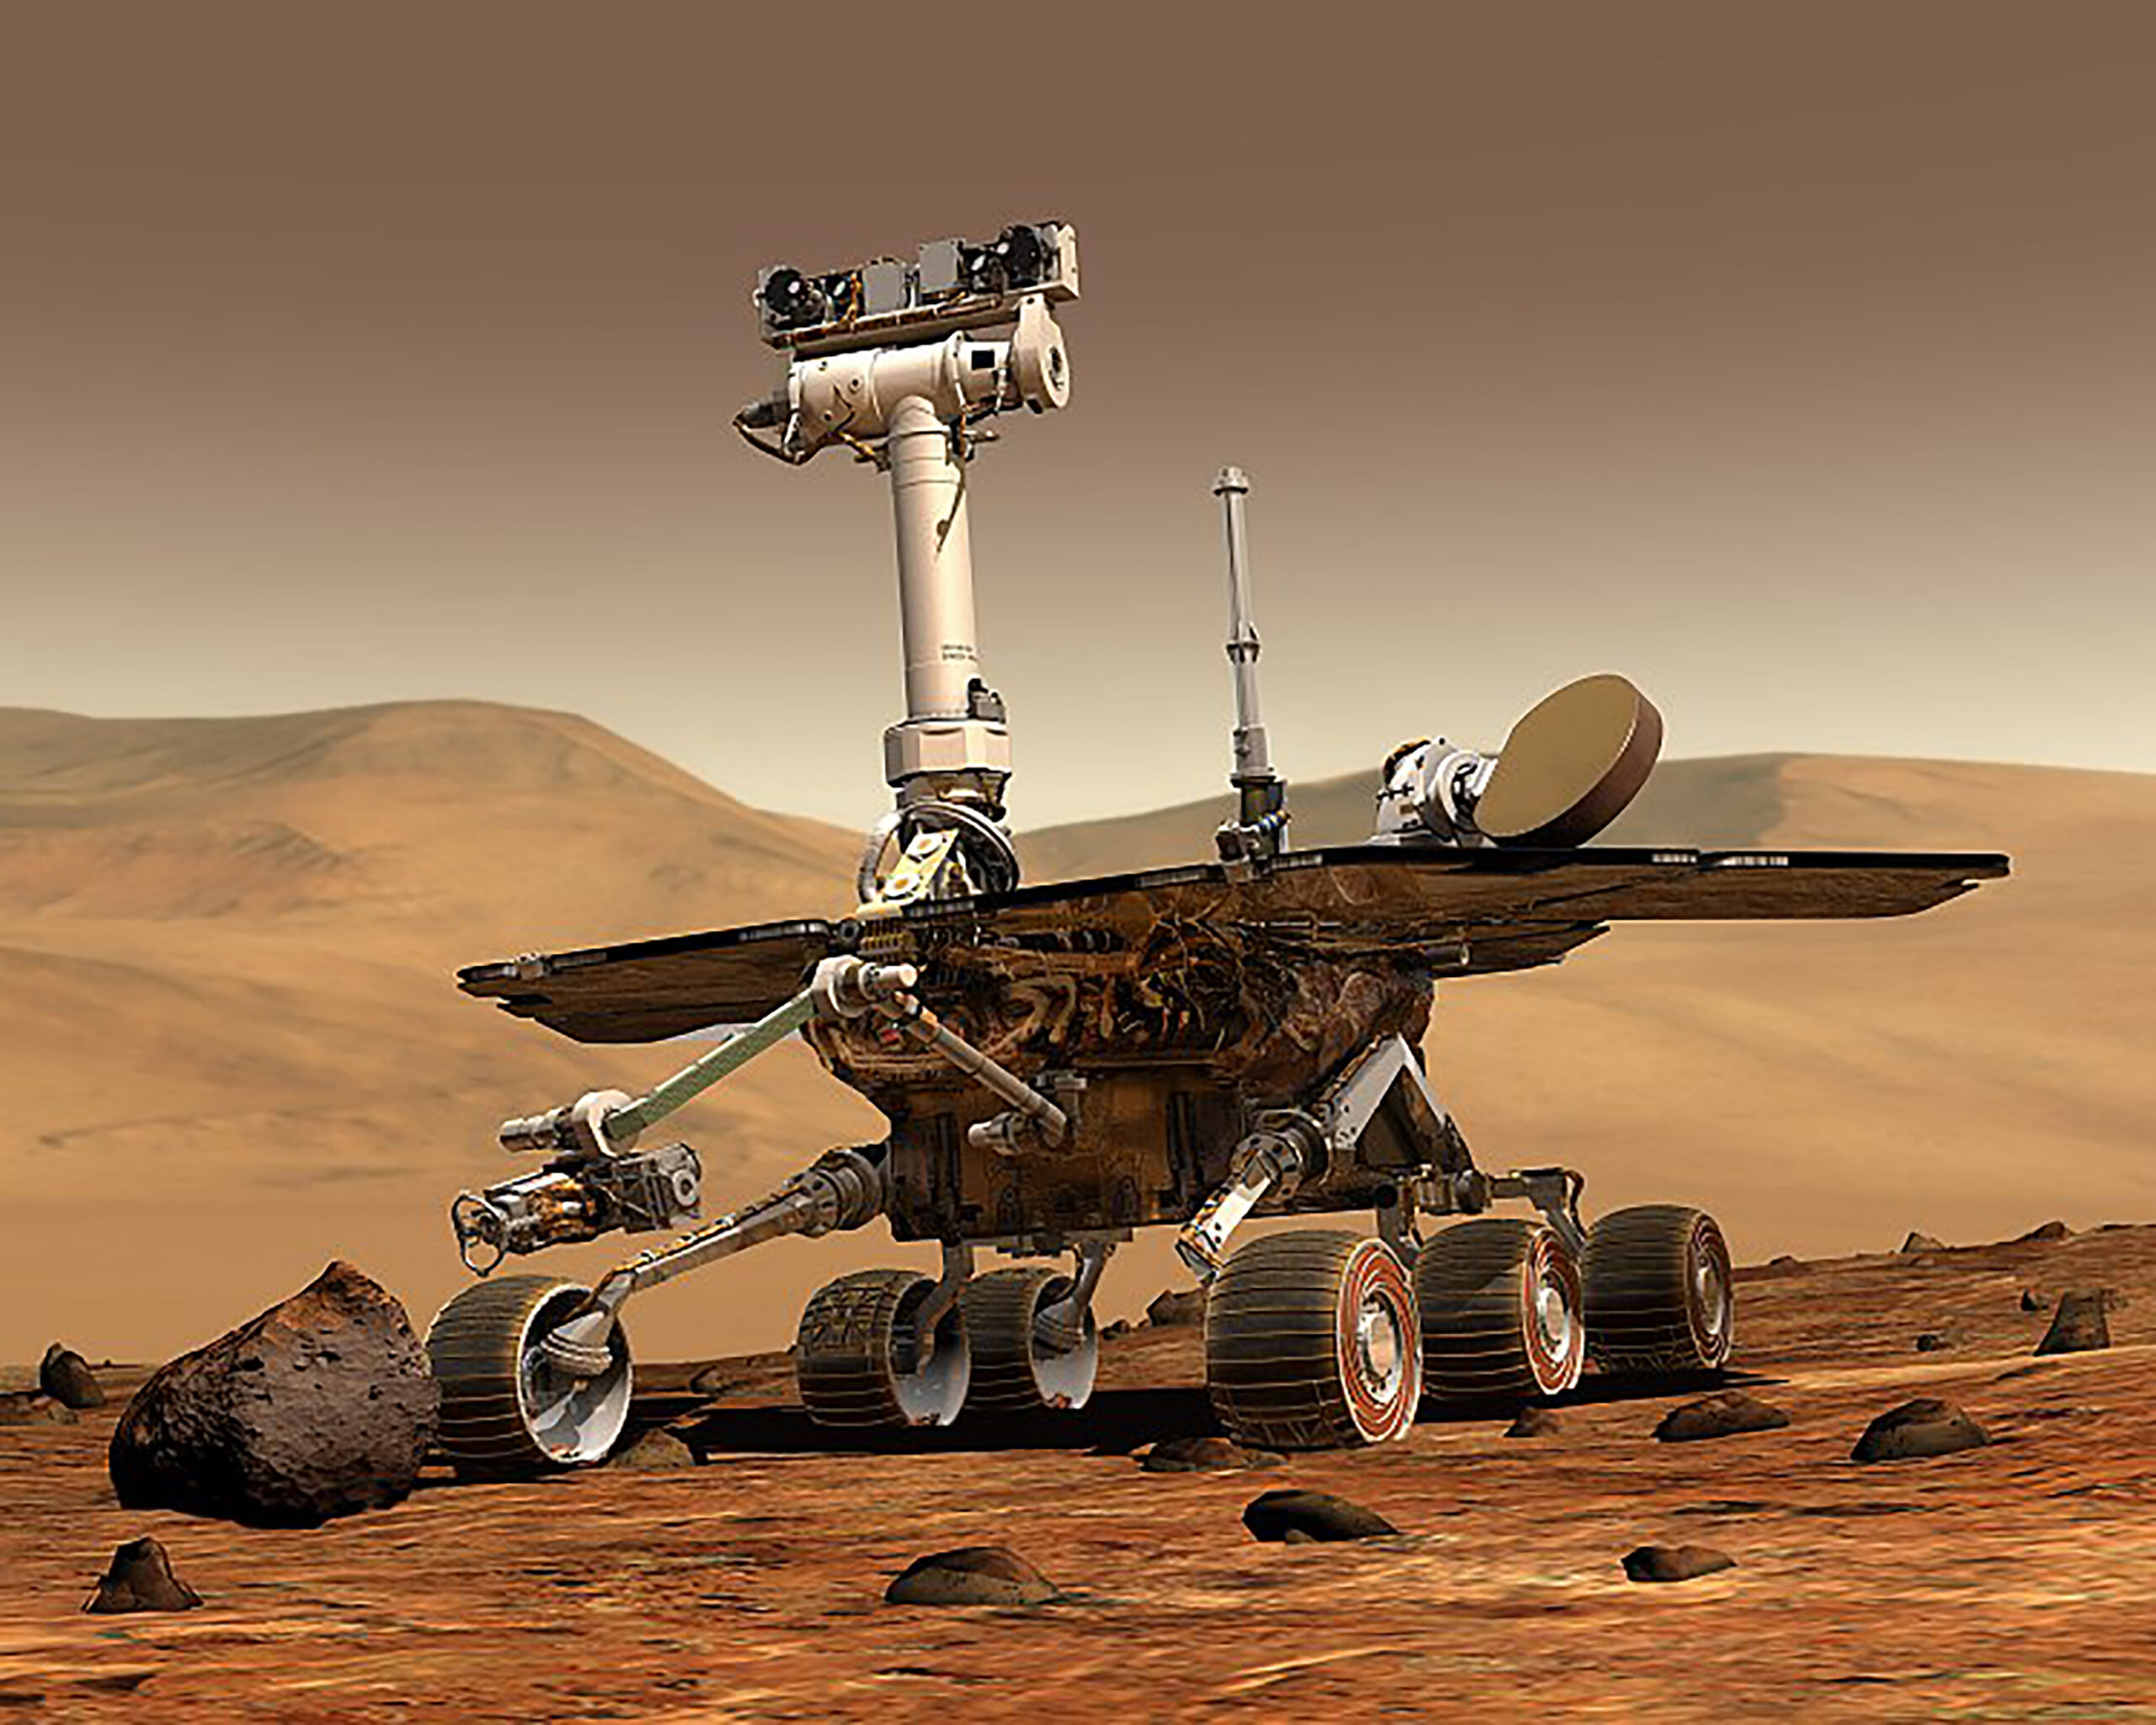 'Like a close friend': Students react to termination of Mars rover